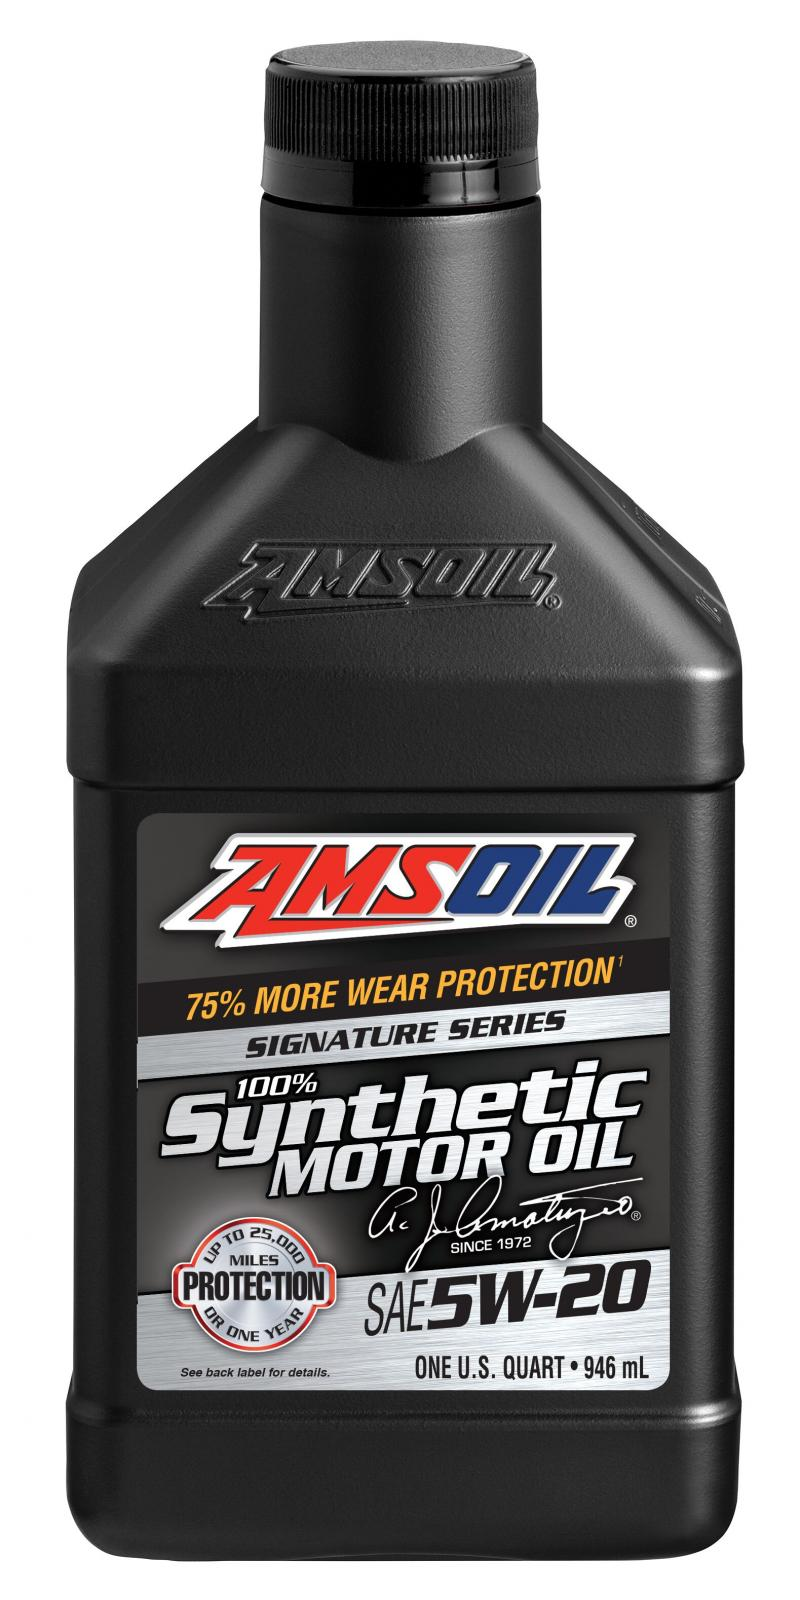 Amsoil Signature Series Synthetic Motor Oil Pittsburgh